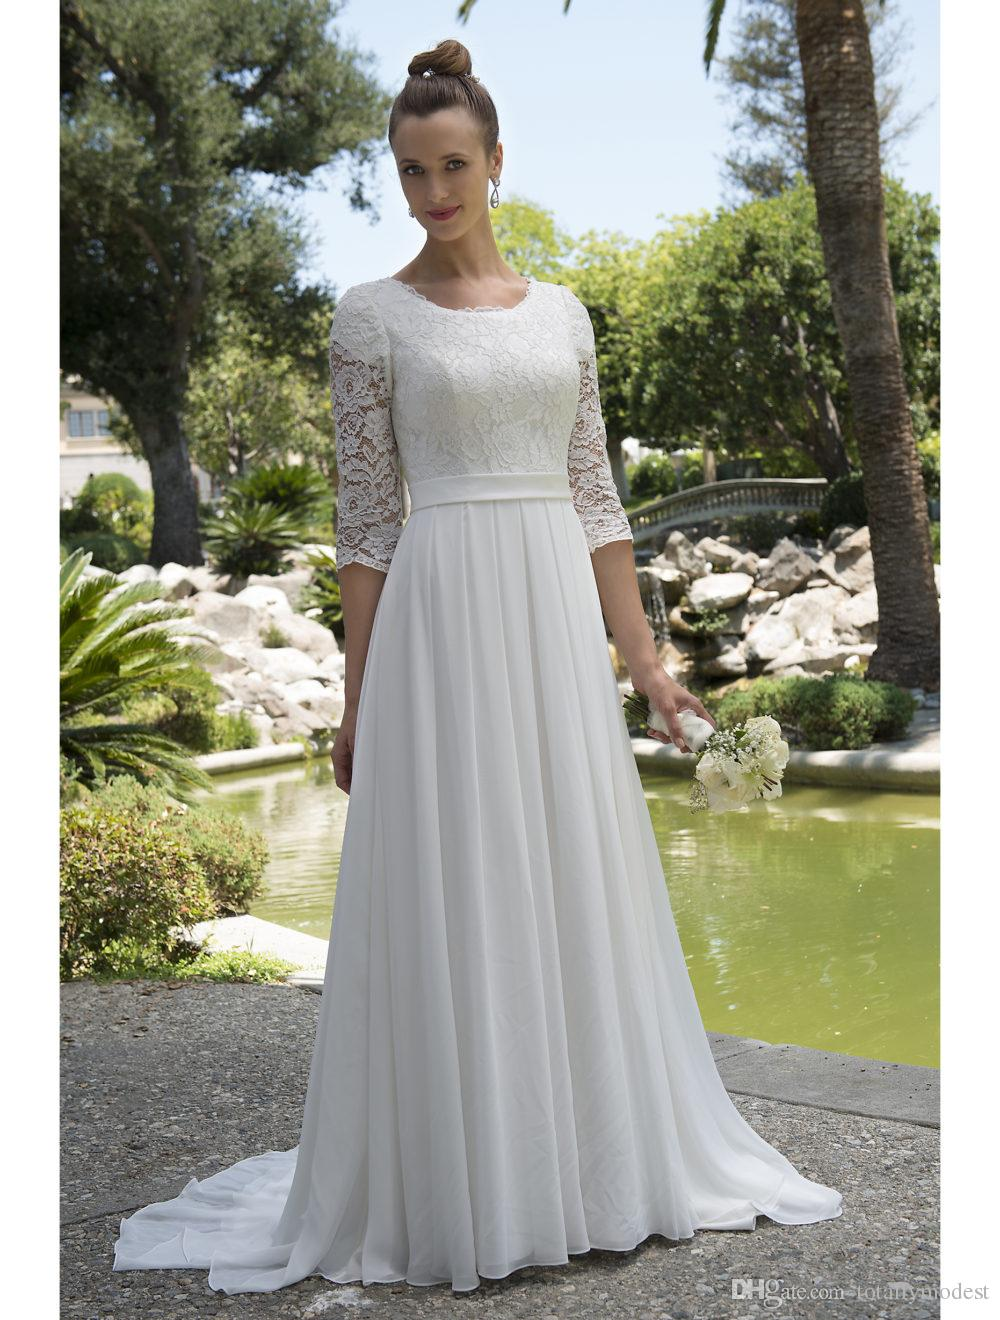 Weddings & Events Lace Chiffon Informal Modest Wedding Dresses With Cap Sleeves Long Floor Bridal Gowns A-line Simple Beach Bride Reception Gowns